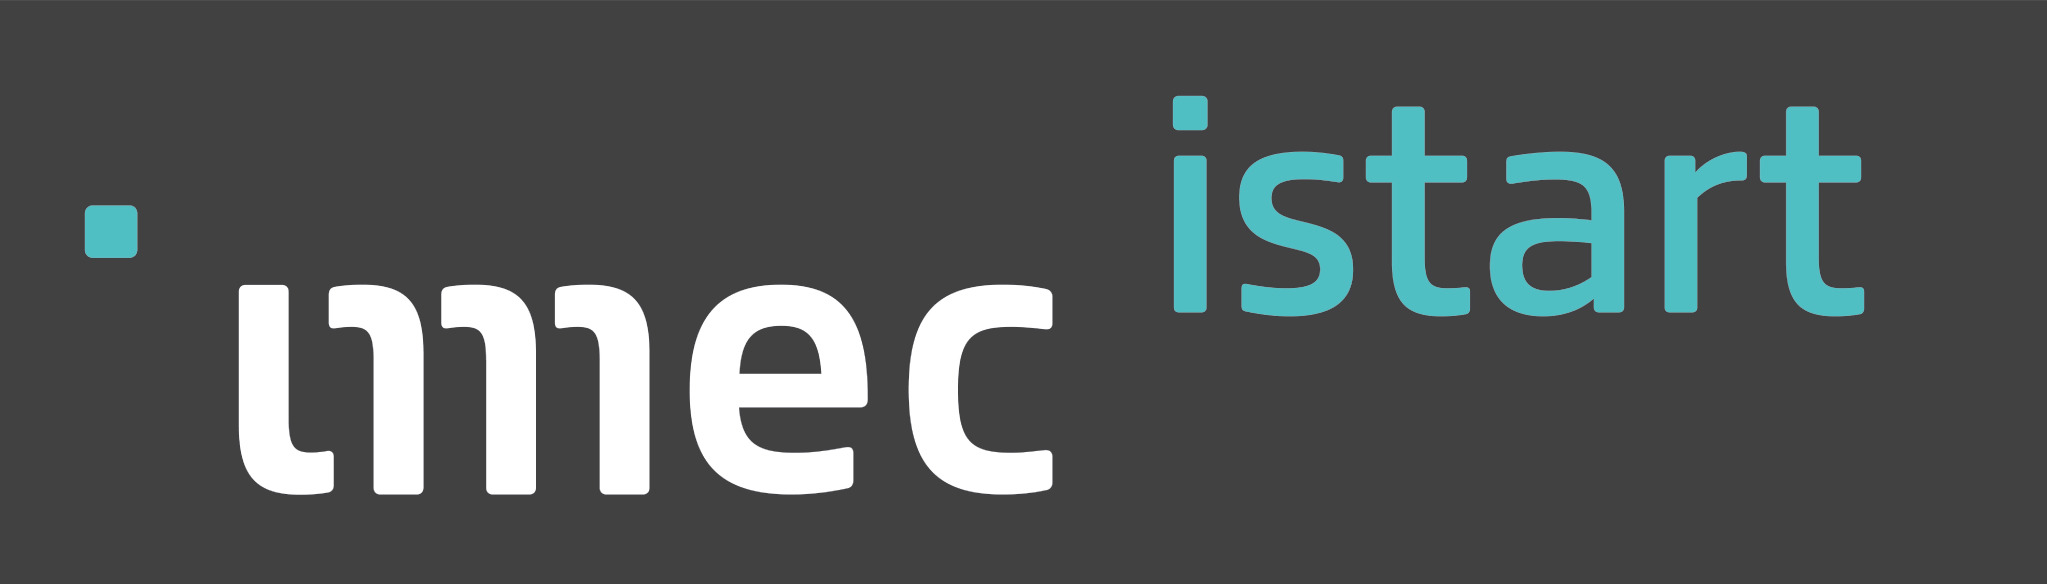 imec.istart_logo_white_CMYK_final_preview.jpeg